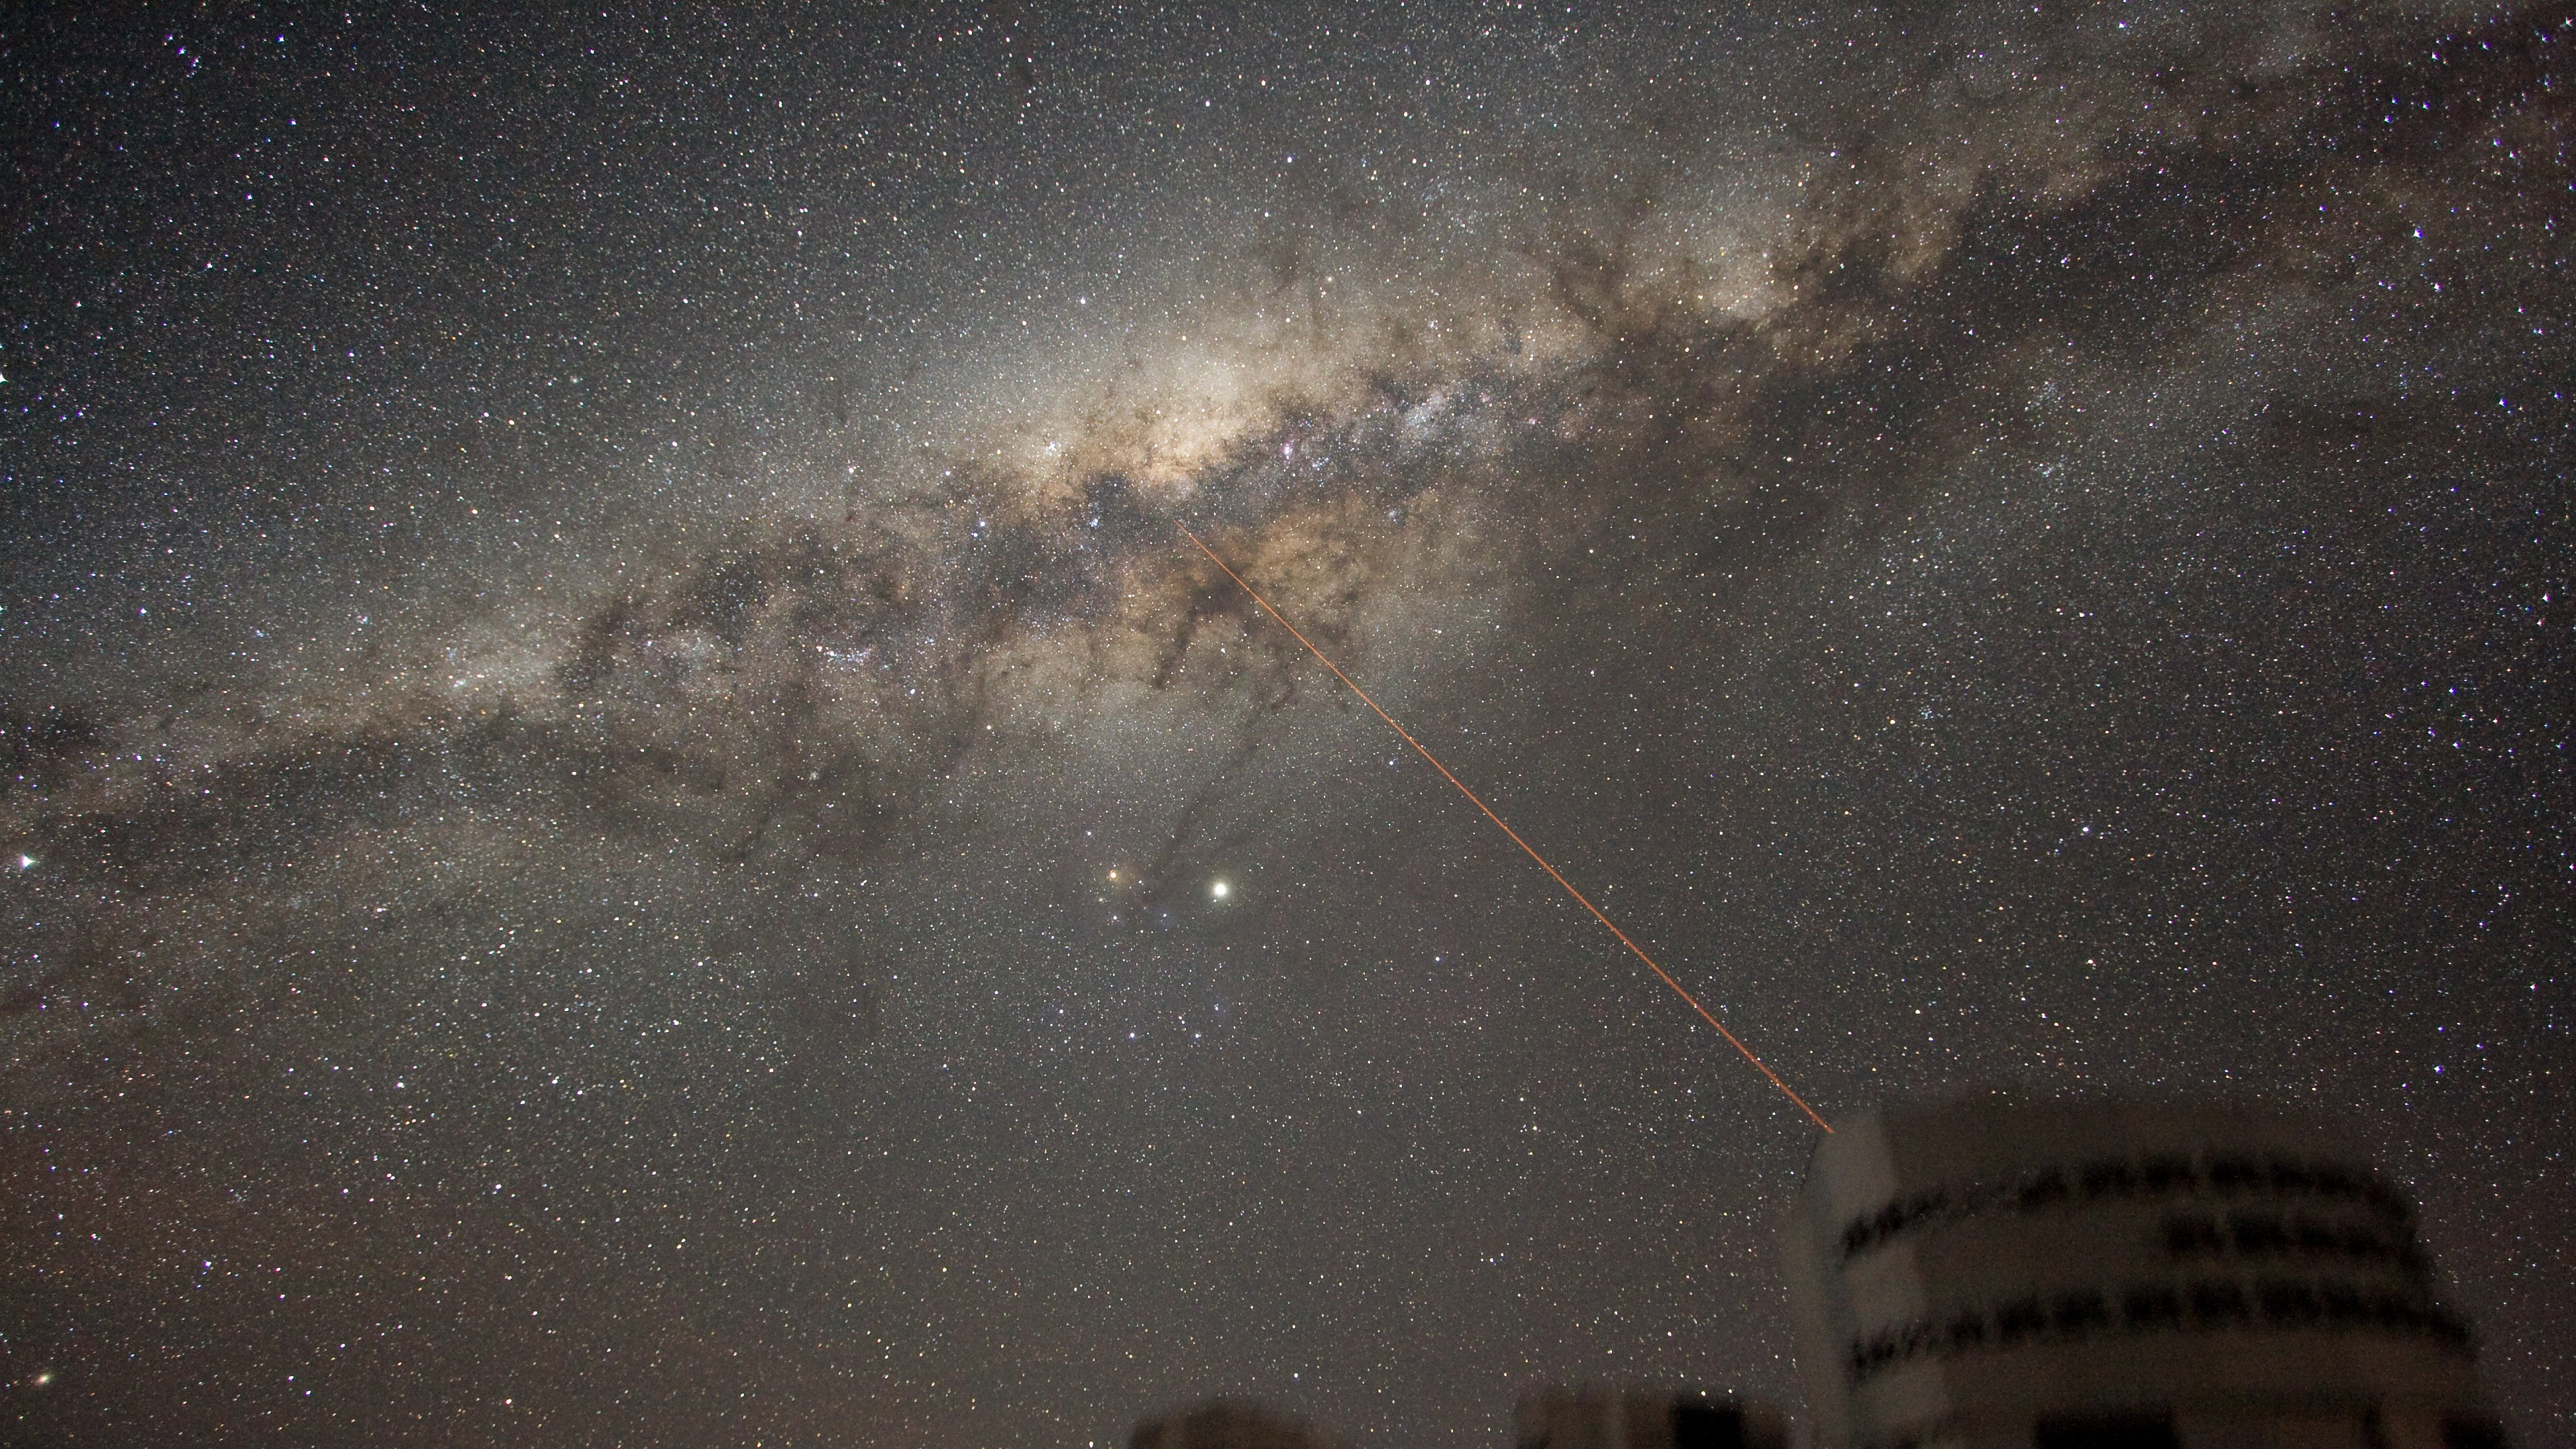 Scientists Spot One Of The Oldest Stars In The Milky Way